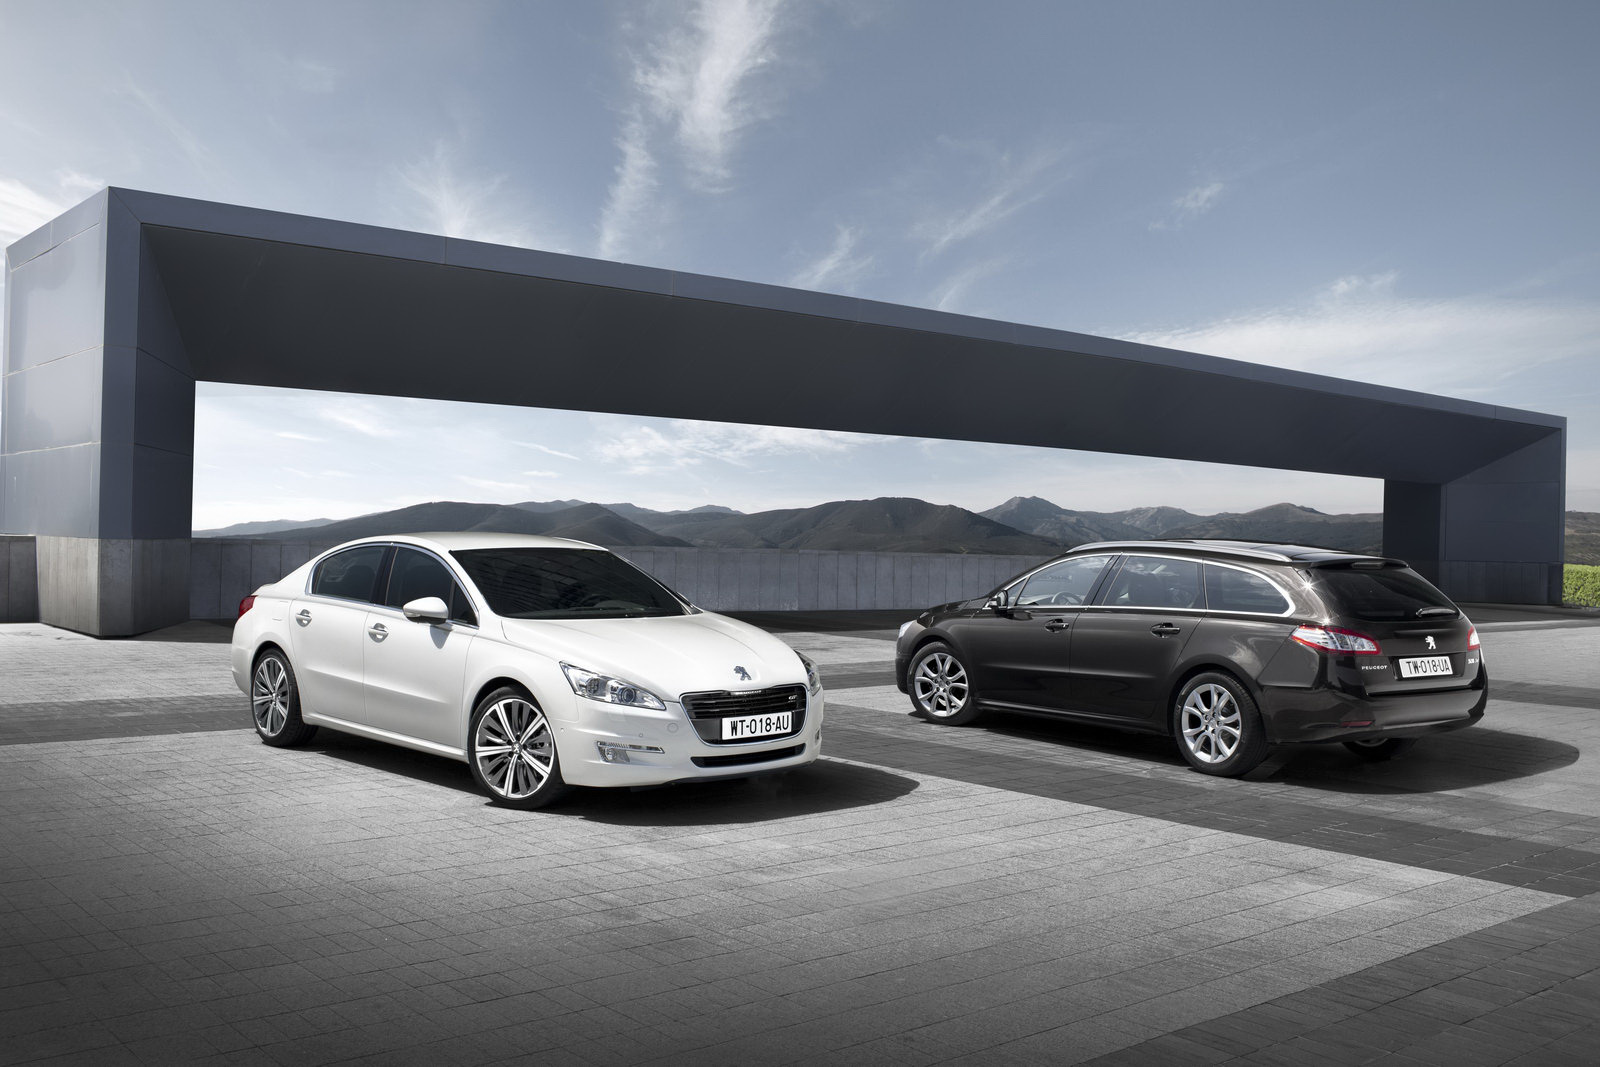 Peugeot 508 33 2011 Peugeot 508 Photos,Specifications,Reviews,Price